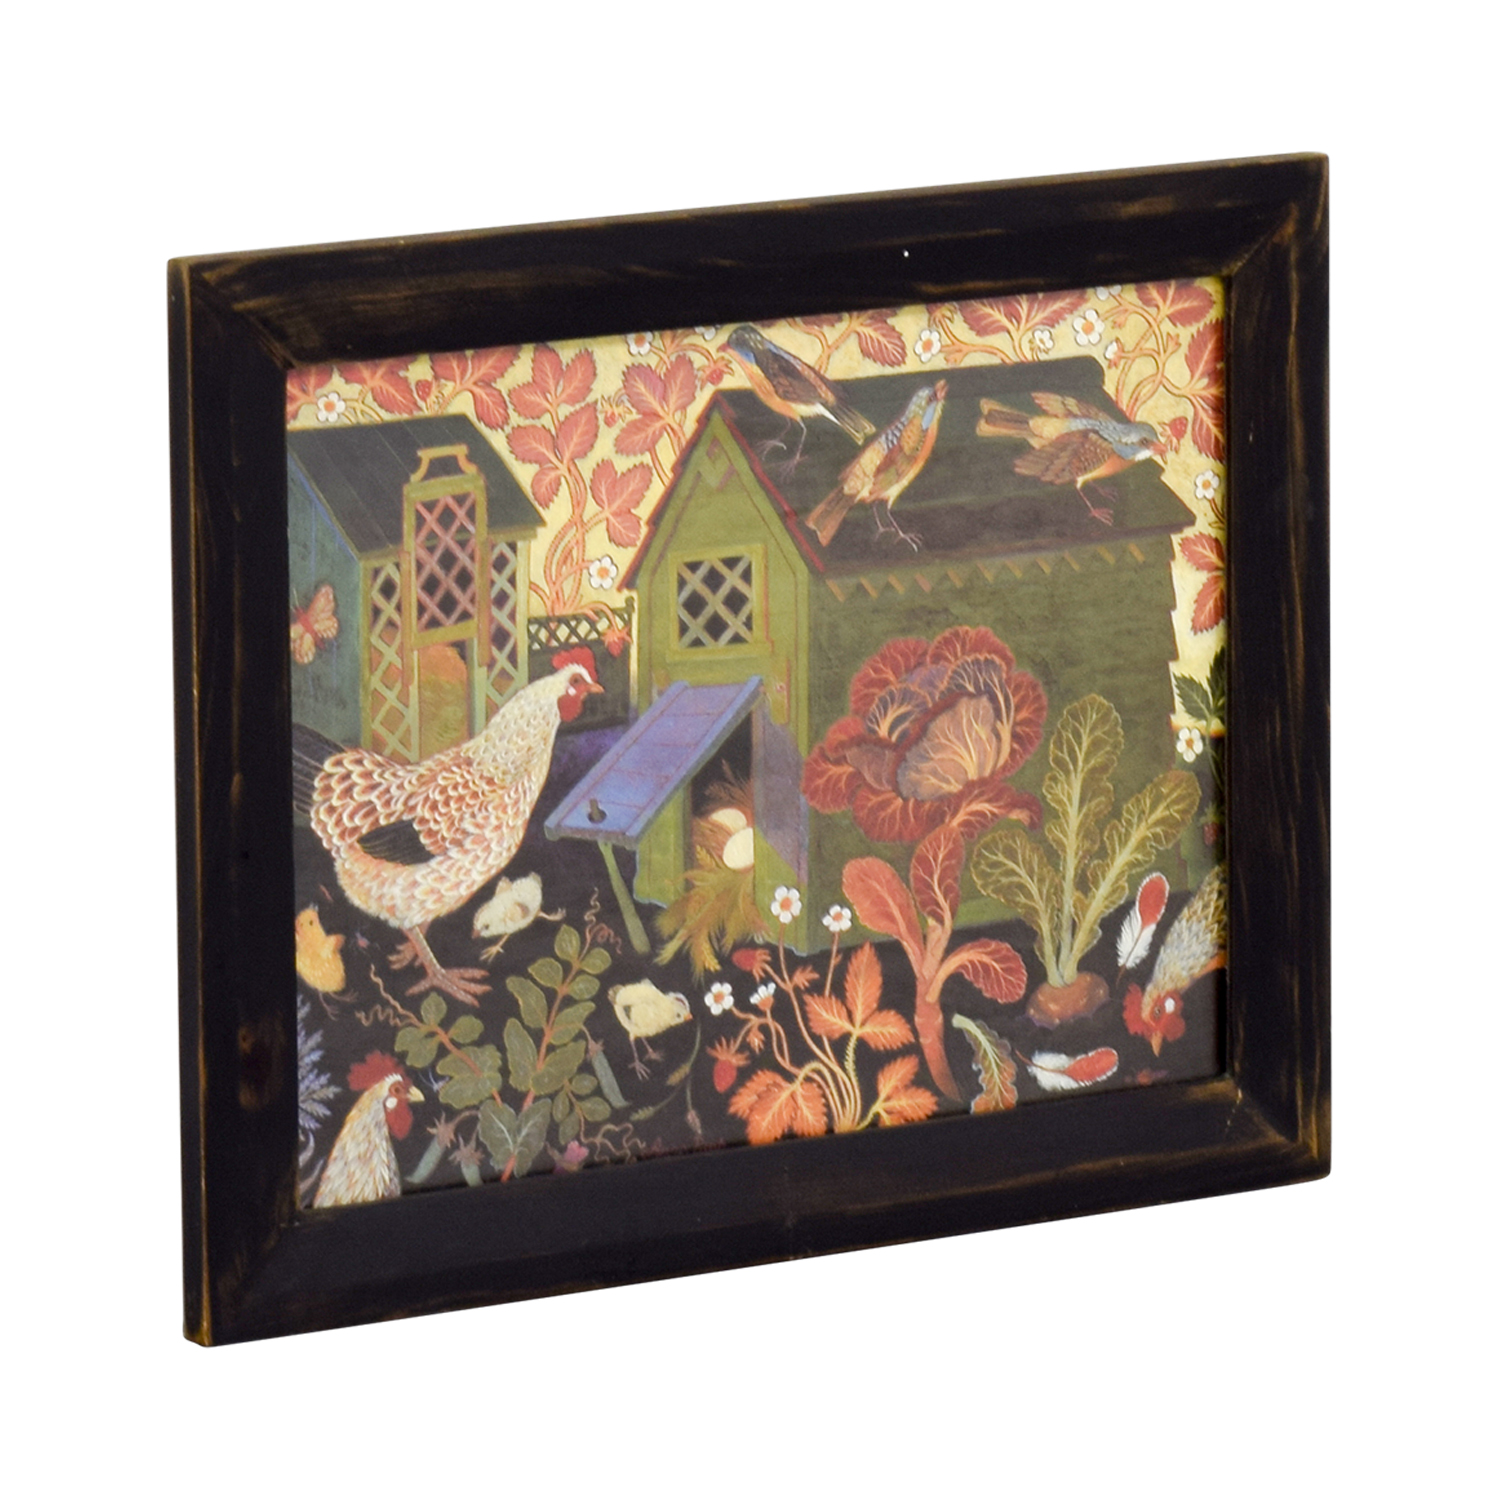 Clapper Hollow Designs Chicken Coop Framed Print sale